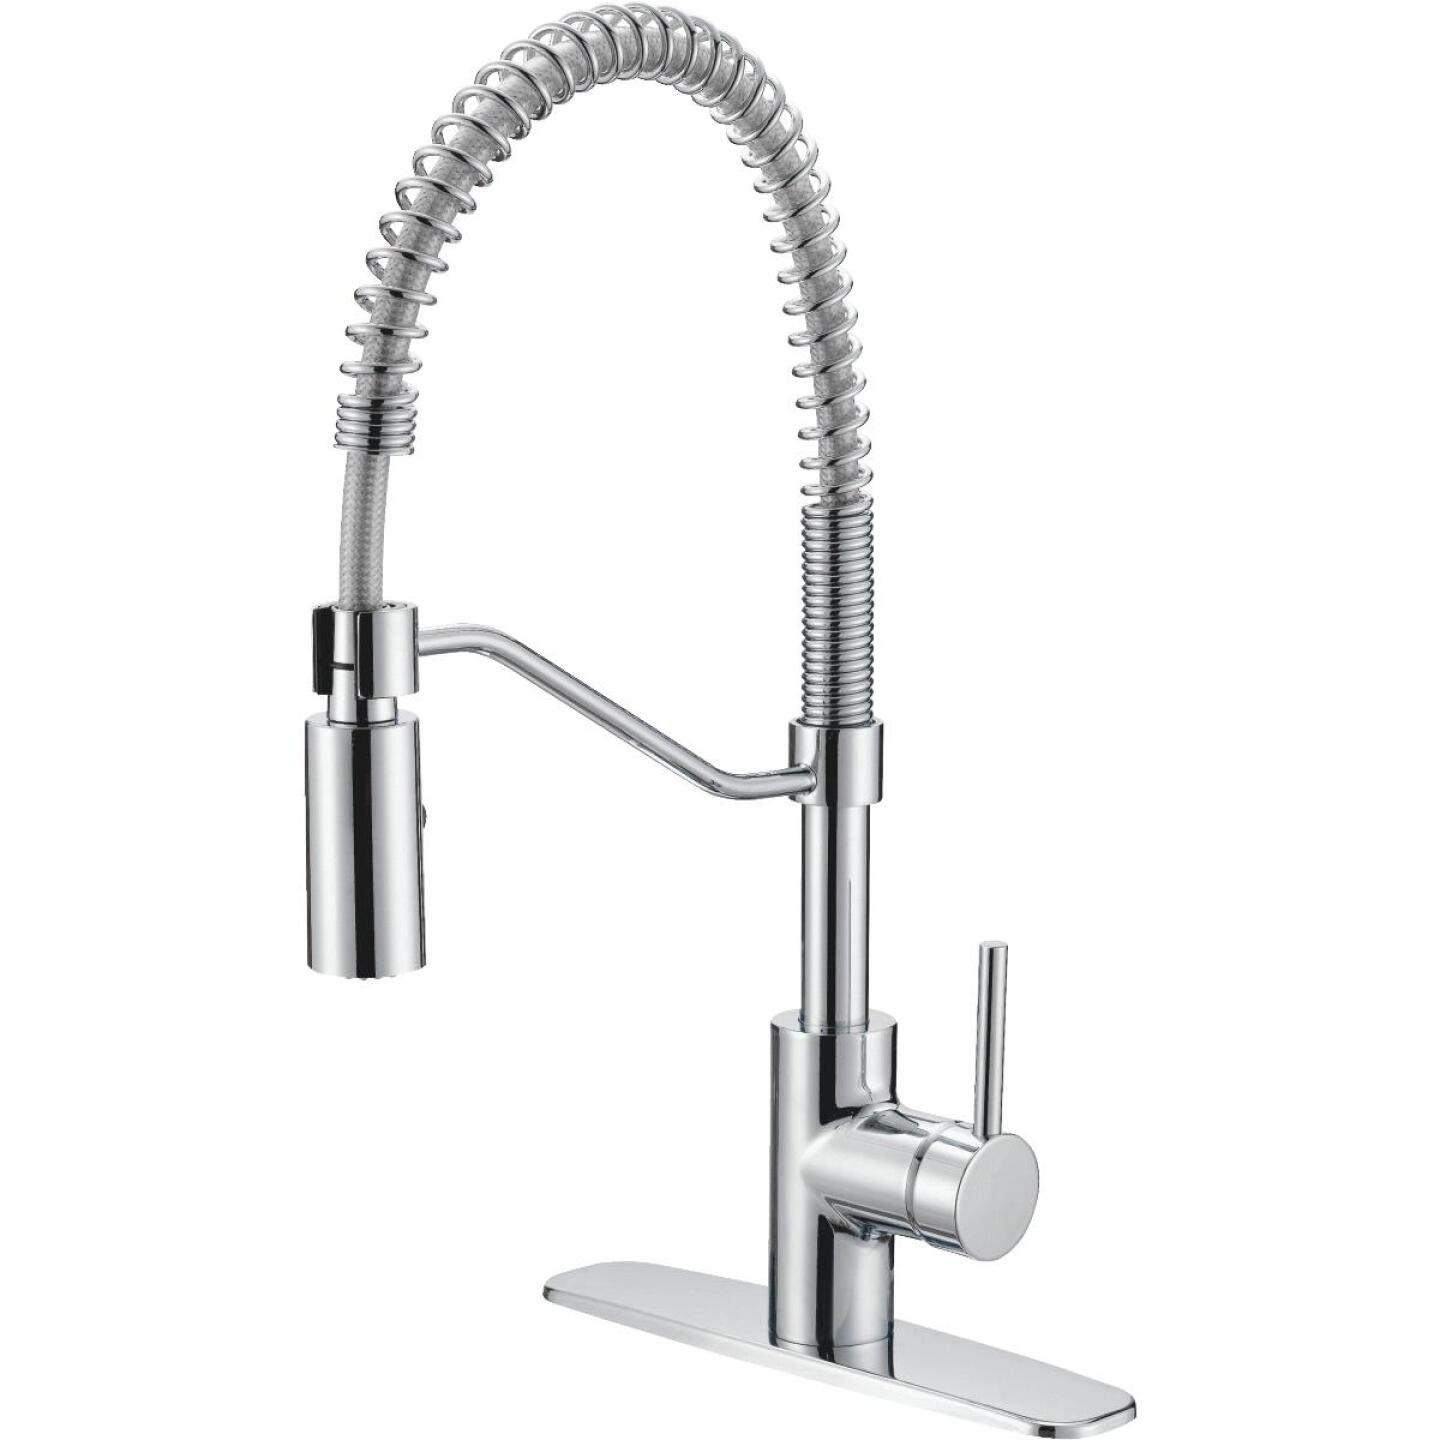 Home Impressions Single Handle Lever Commercial Pull-Down Kitchen Faucet, Chrome Image 1